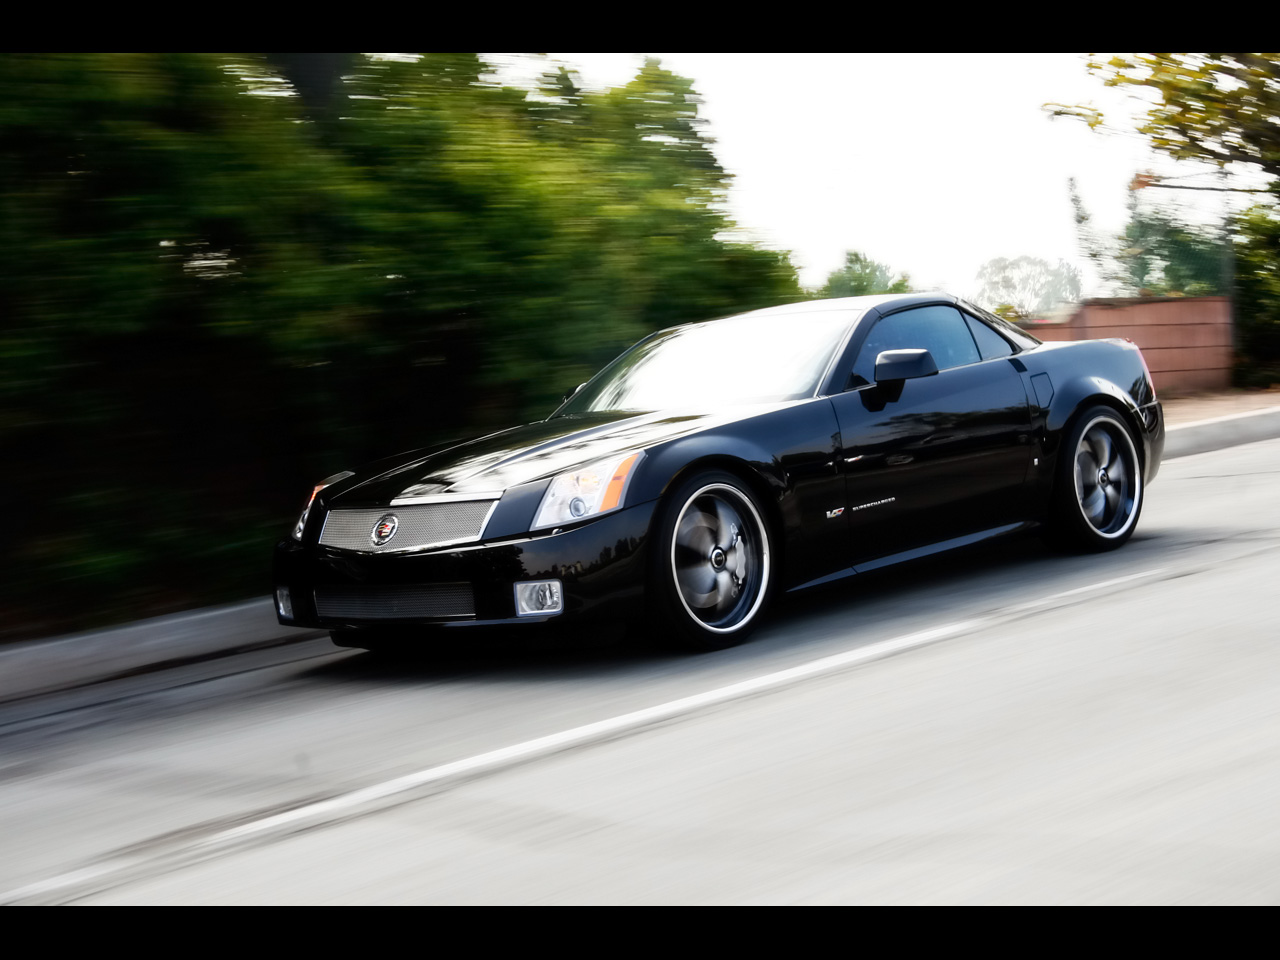 cadillac xlr pictures autos post 2005 mini cooper s owners manual pdf